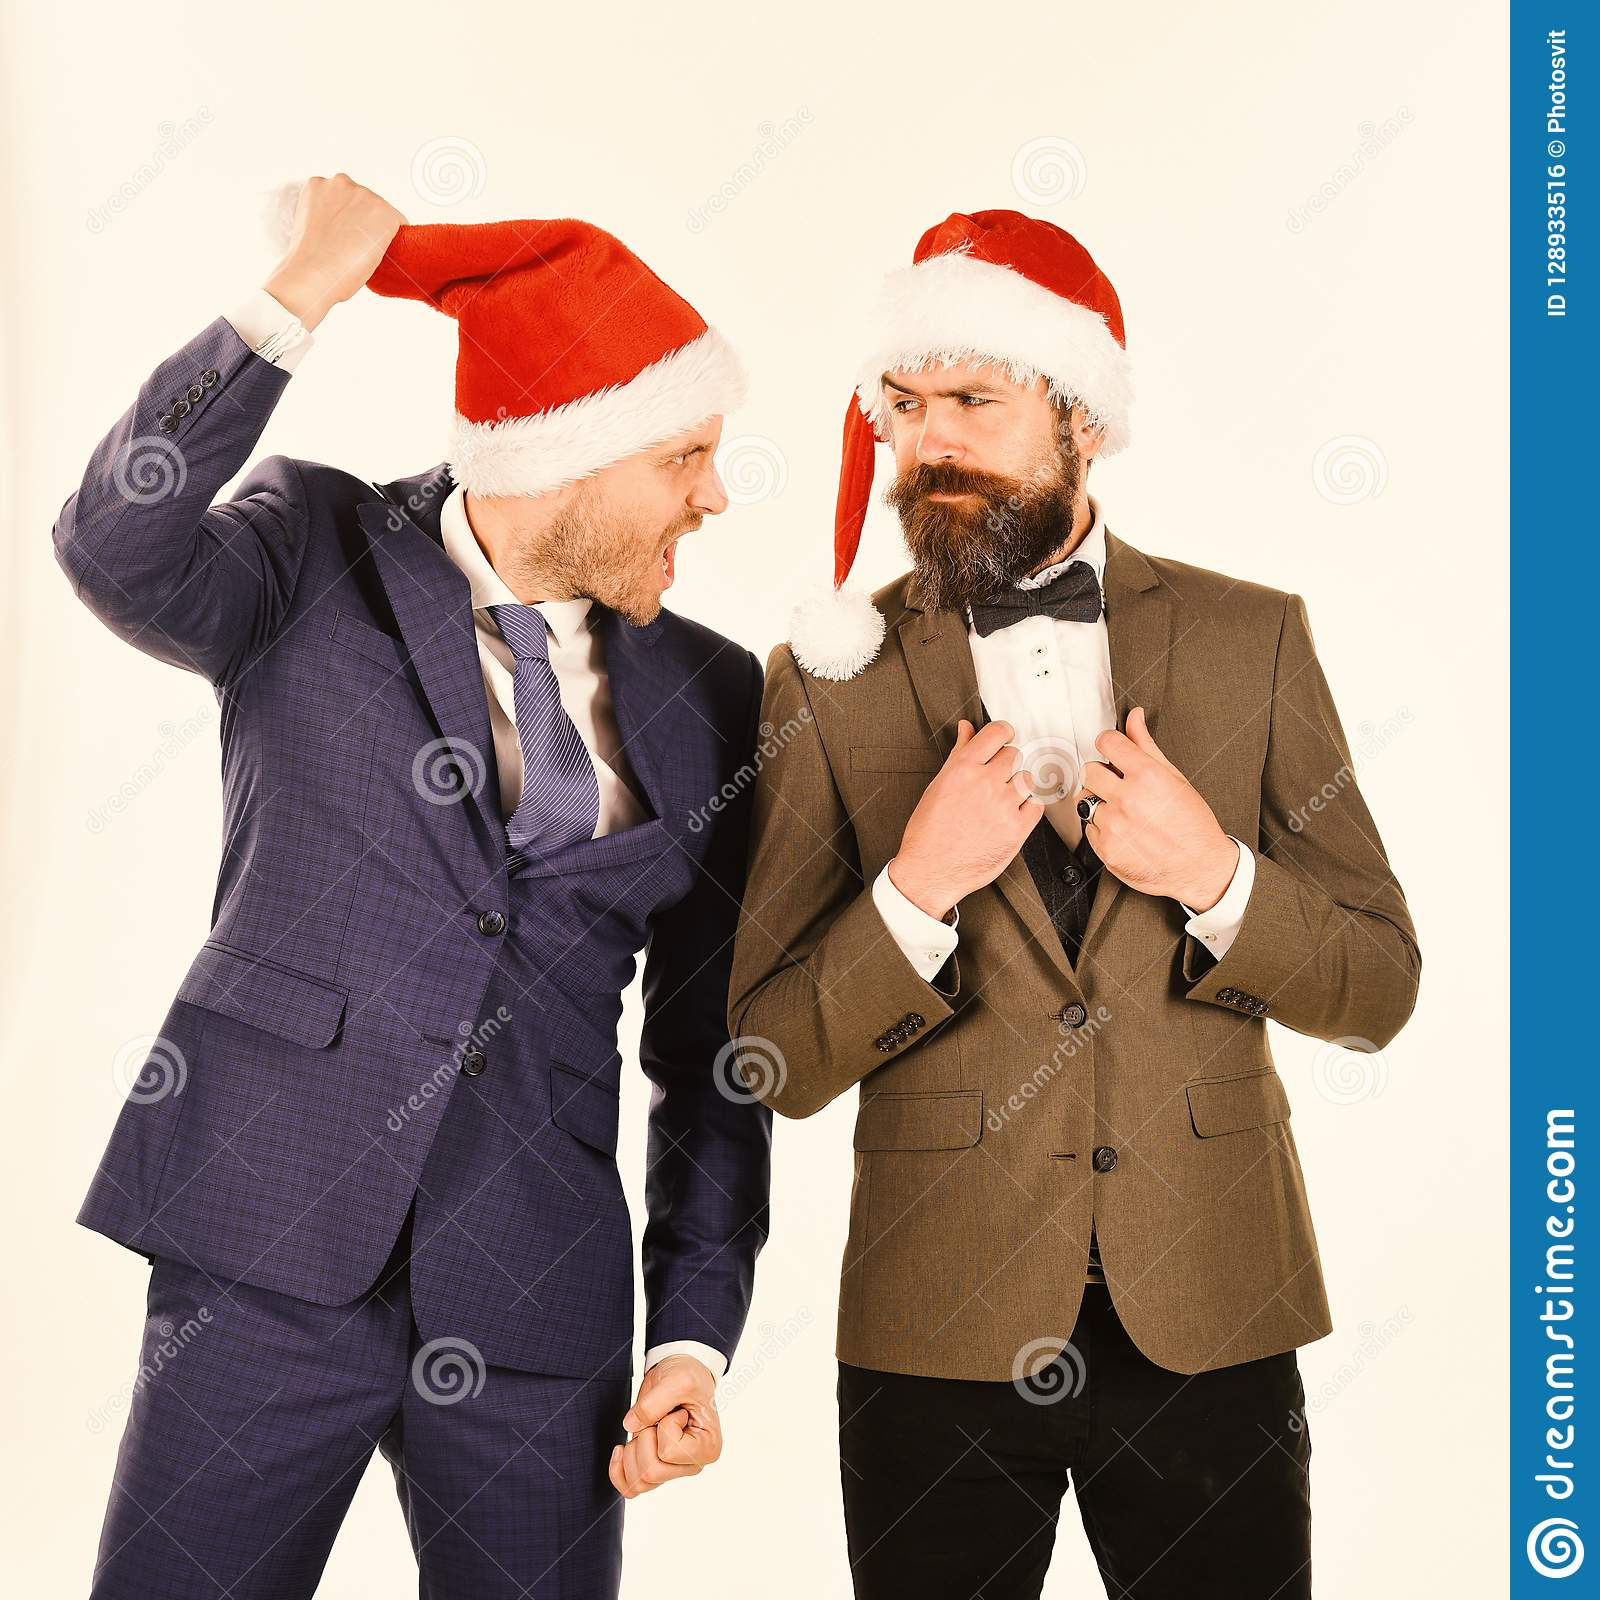 Colleagues with beards argue about business. Christmas celebration